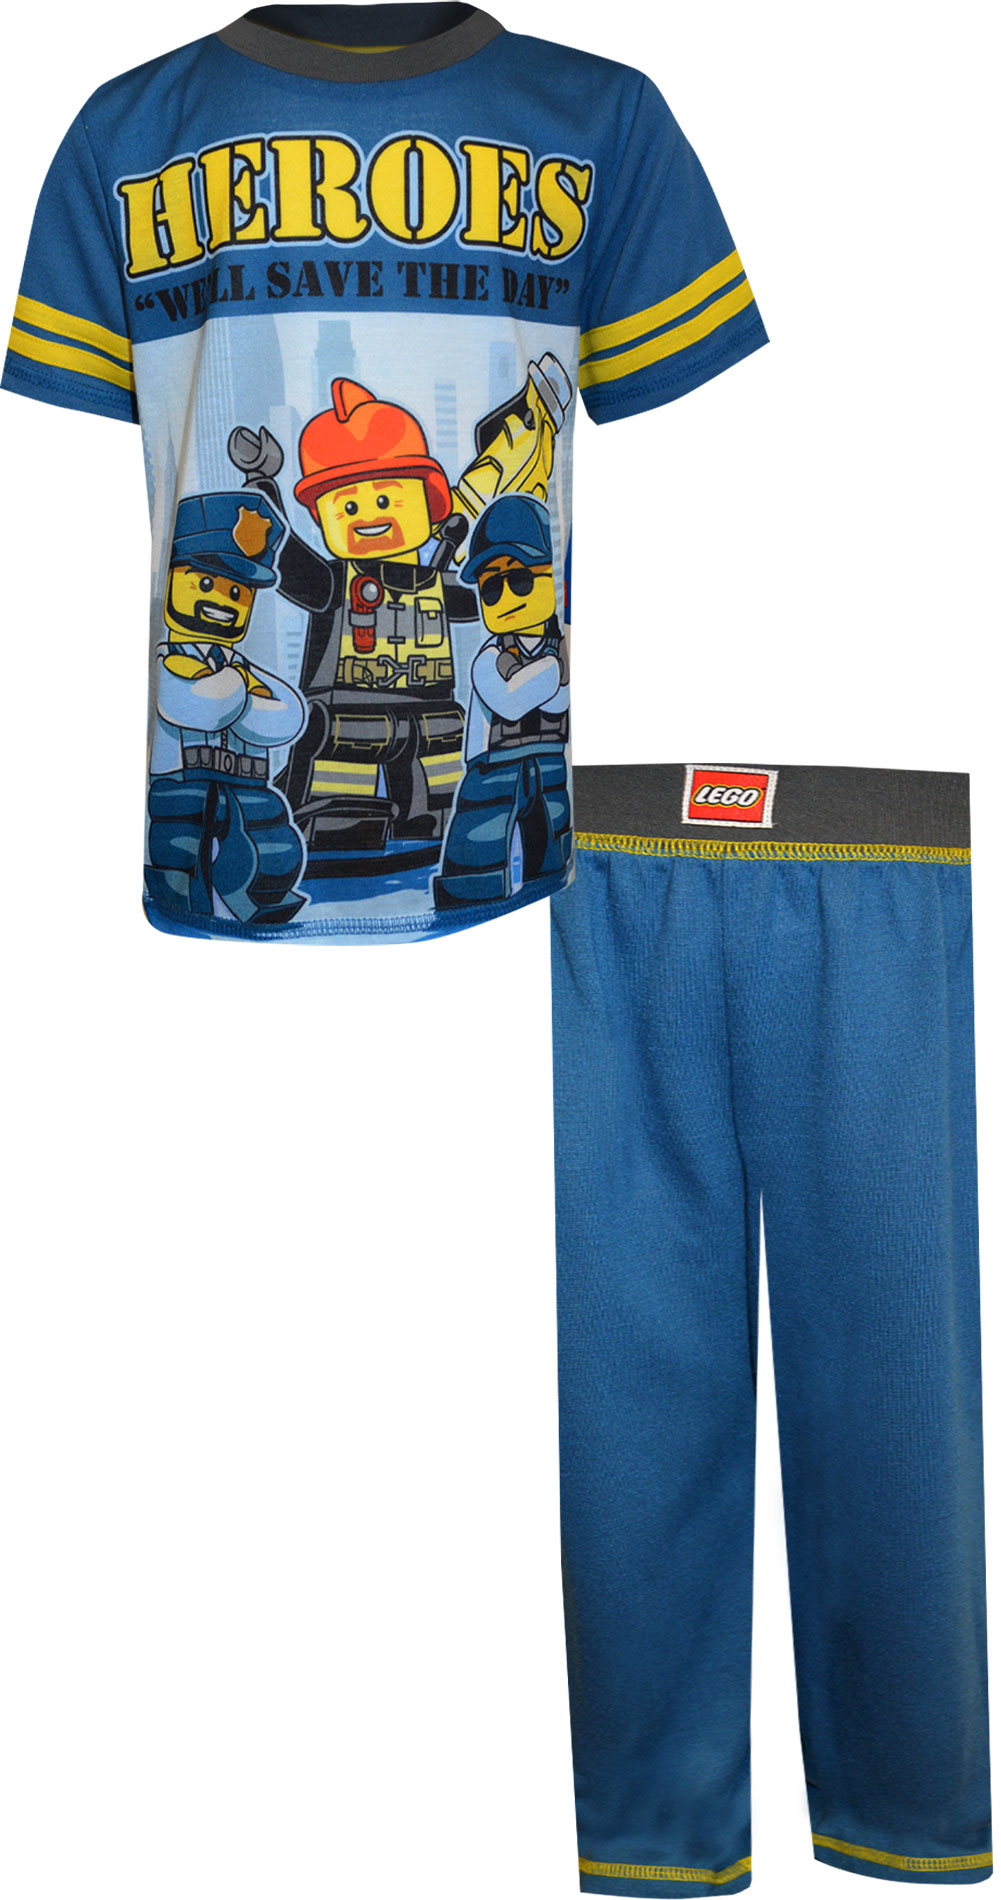 Image of LEGO City Heroes Save The Day Pajamas for boys